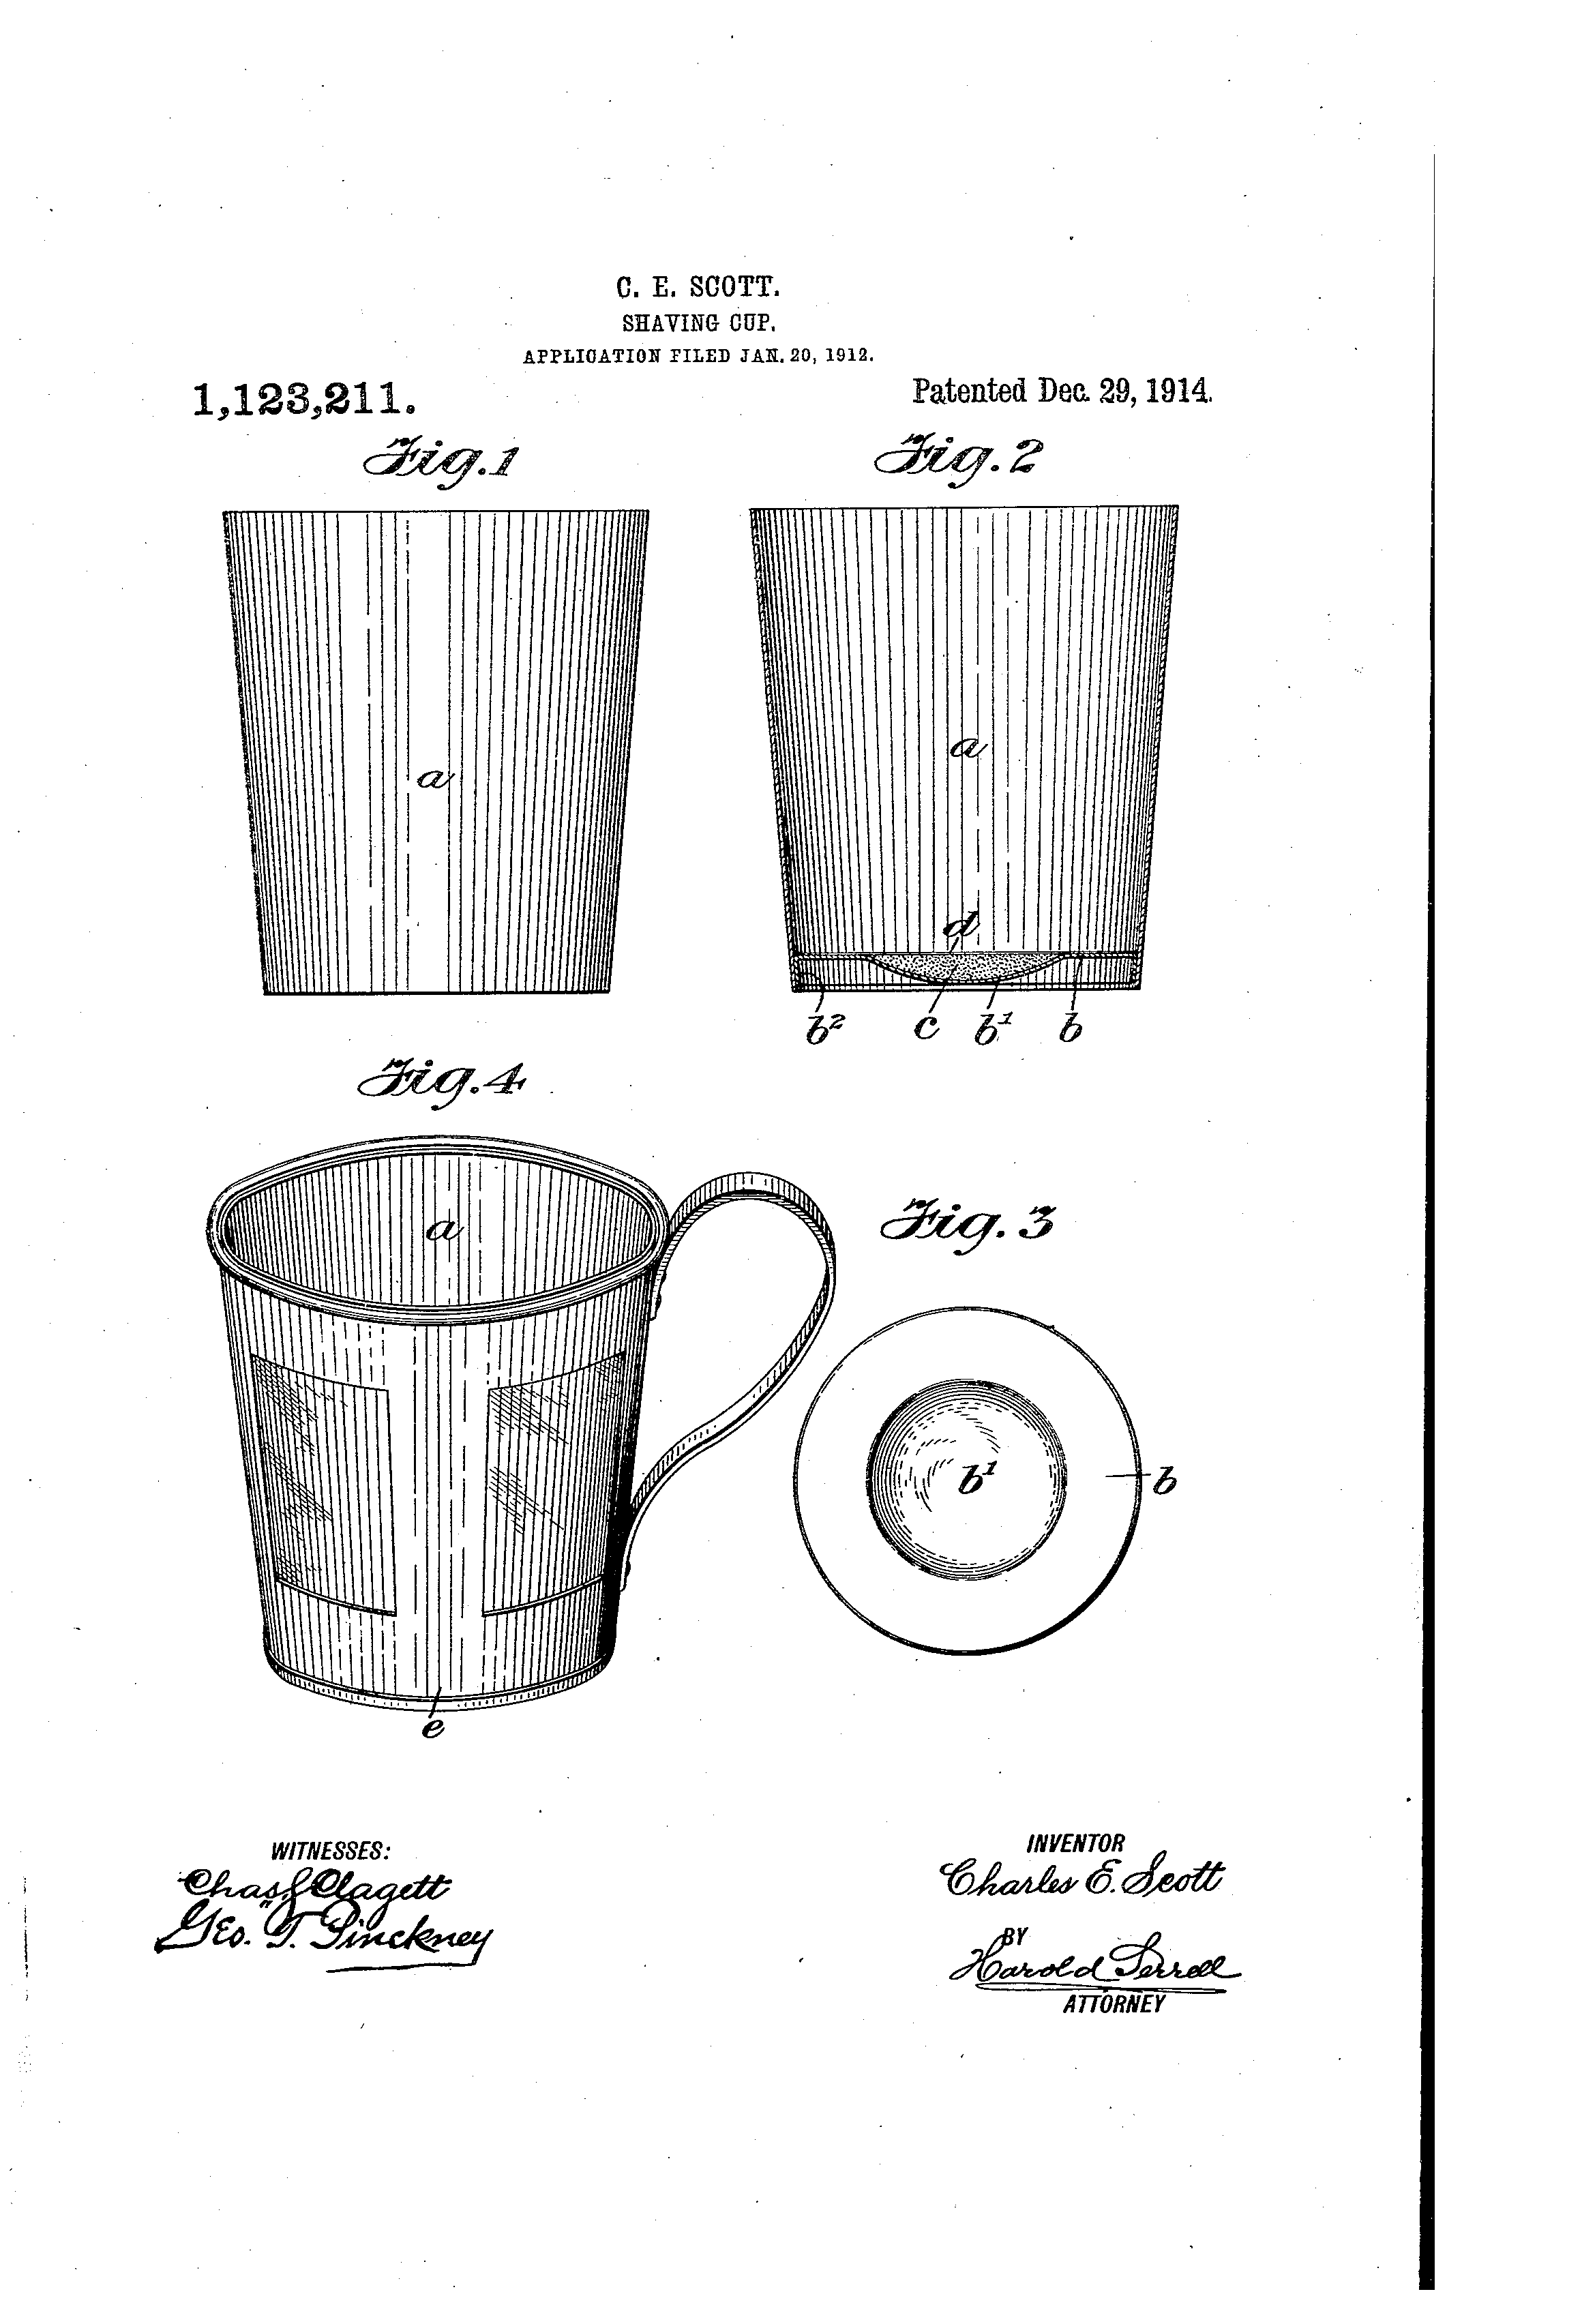 Patent image for US patent 1123211 - a hygienic, sanitary, and above all inexpensive disposable shaving cup.